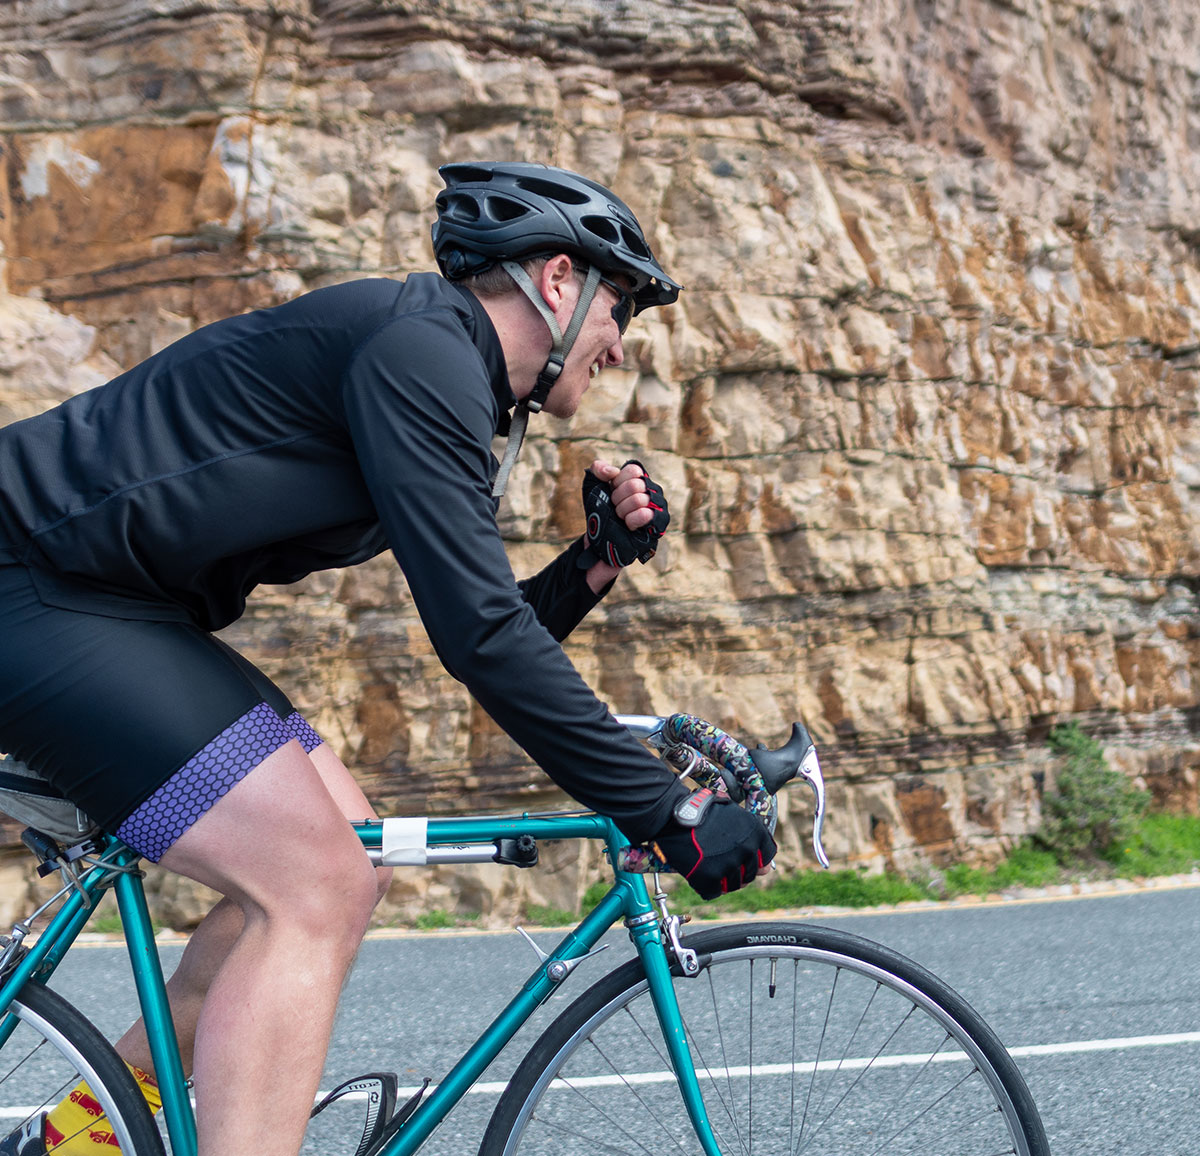 Male cyclist on his bike punches the air triumphantly as they ride past rock formations